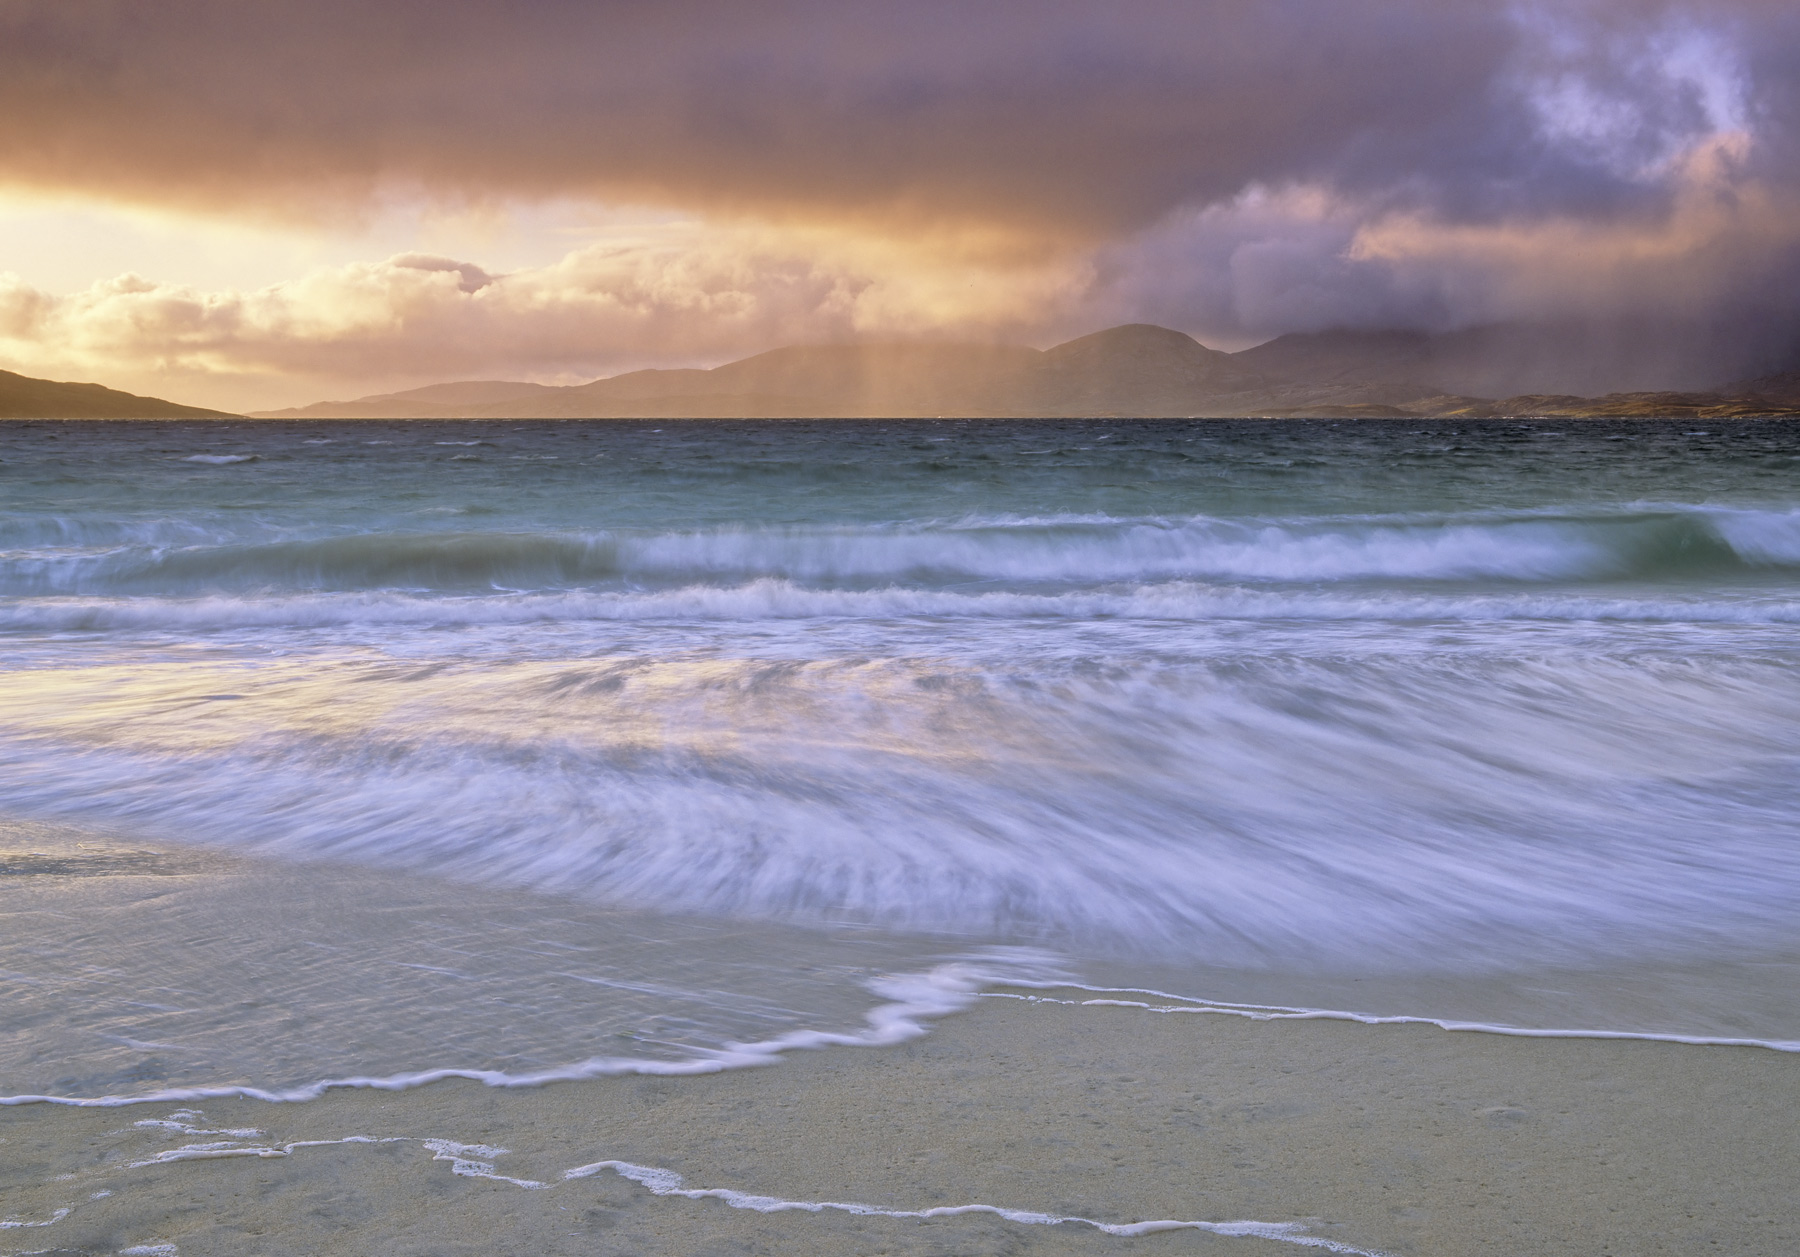 Storm Surge Rosamol, Traigh Rosamol, Harris, Scotland, colourful, sunrise, squally, shower, deluge, Harris, peaks, Atlan, photo